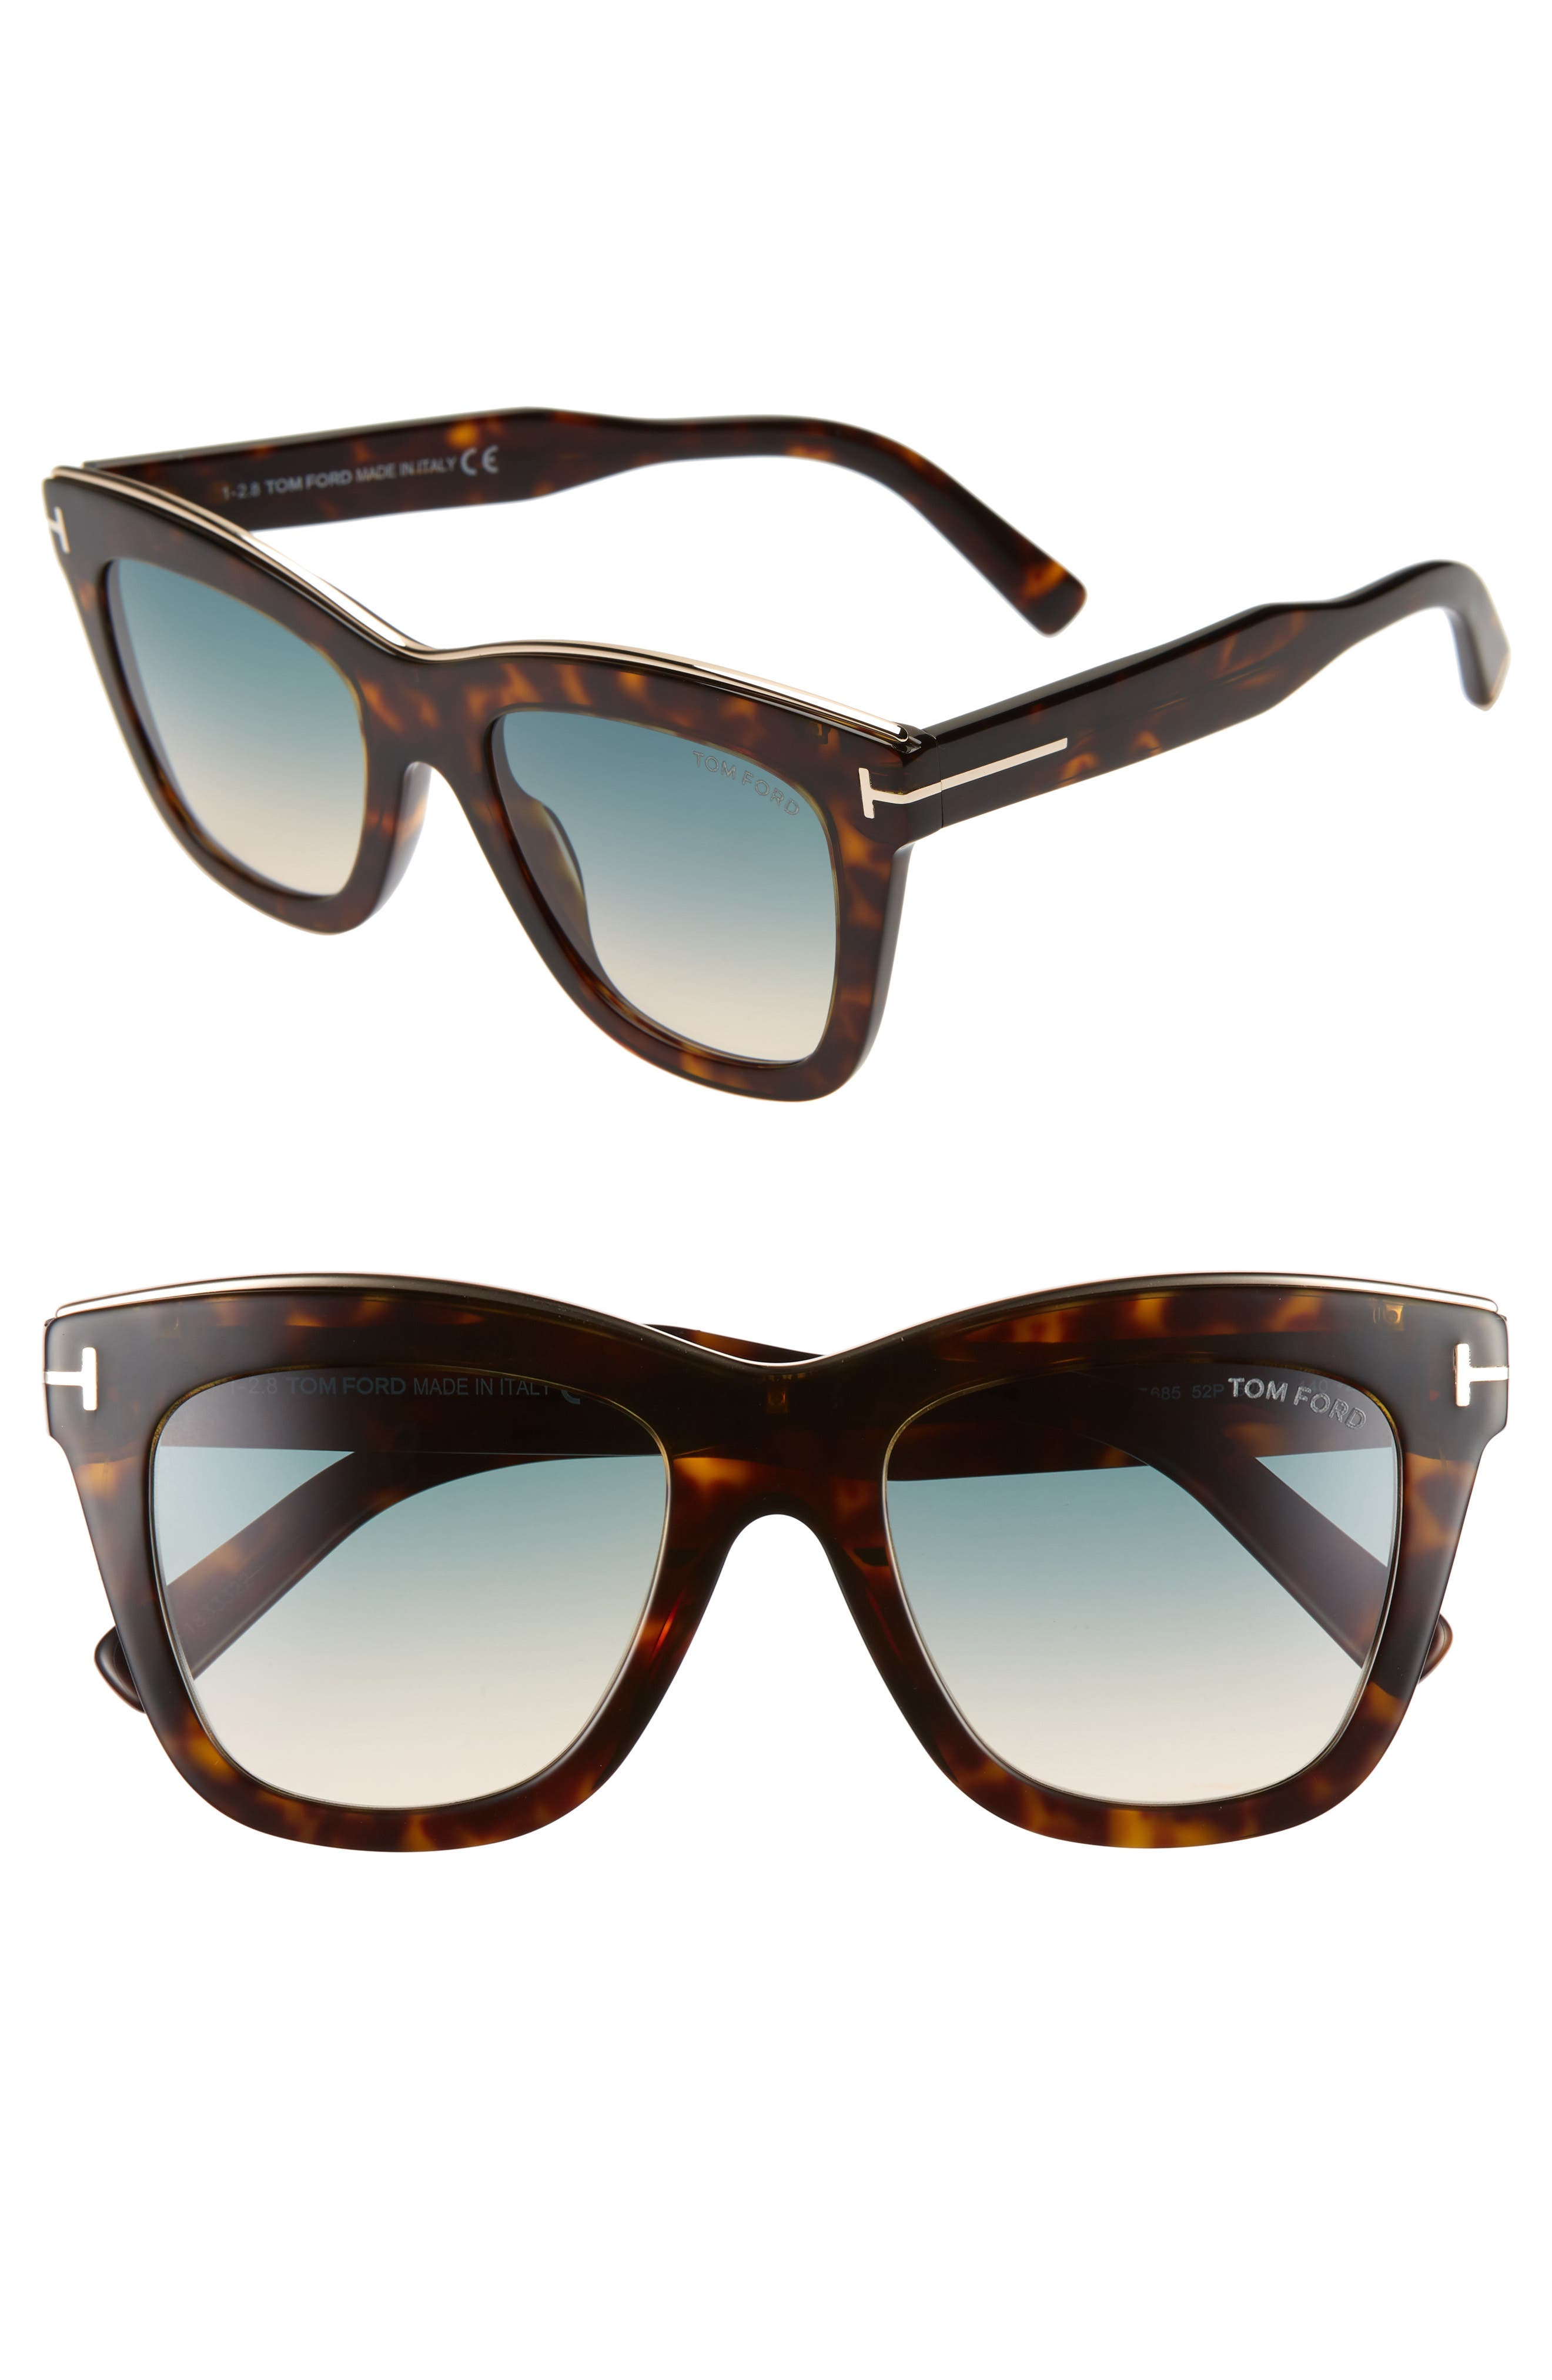 Tom Ford Julie 52Mm Sunglasses - Dark Havana/ Turq To Sand